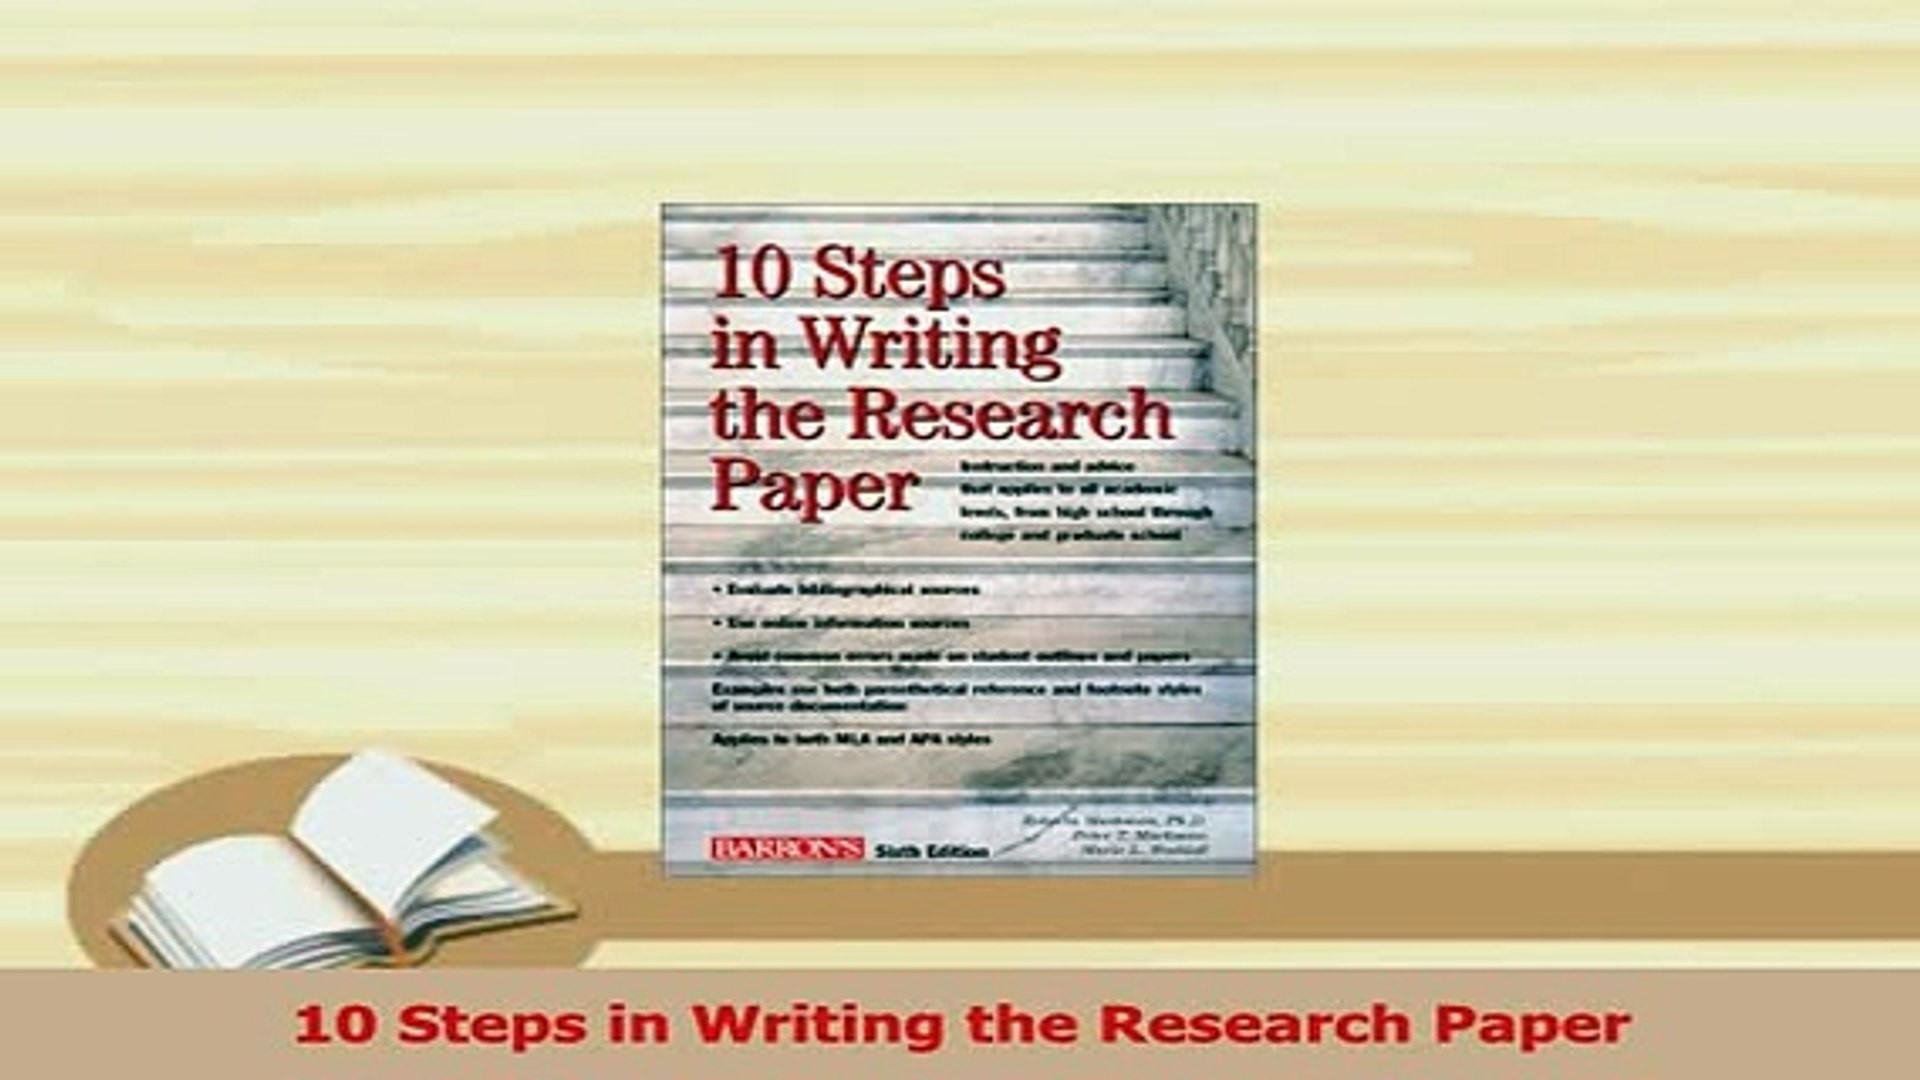 007 Steps For Writing Research Paper X1080 Unforgettable 10 A In The Markman Pdf To Write Basic 1920